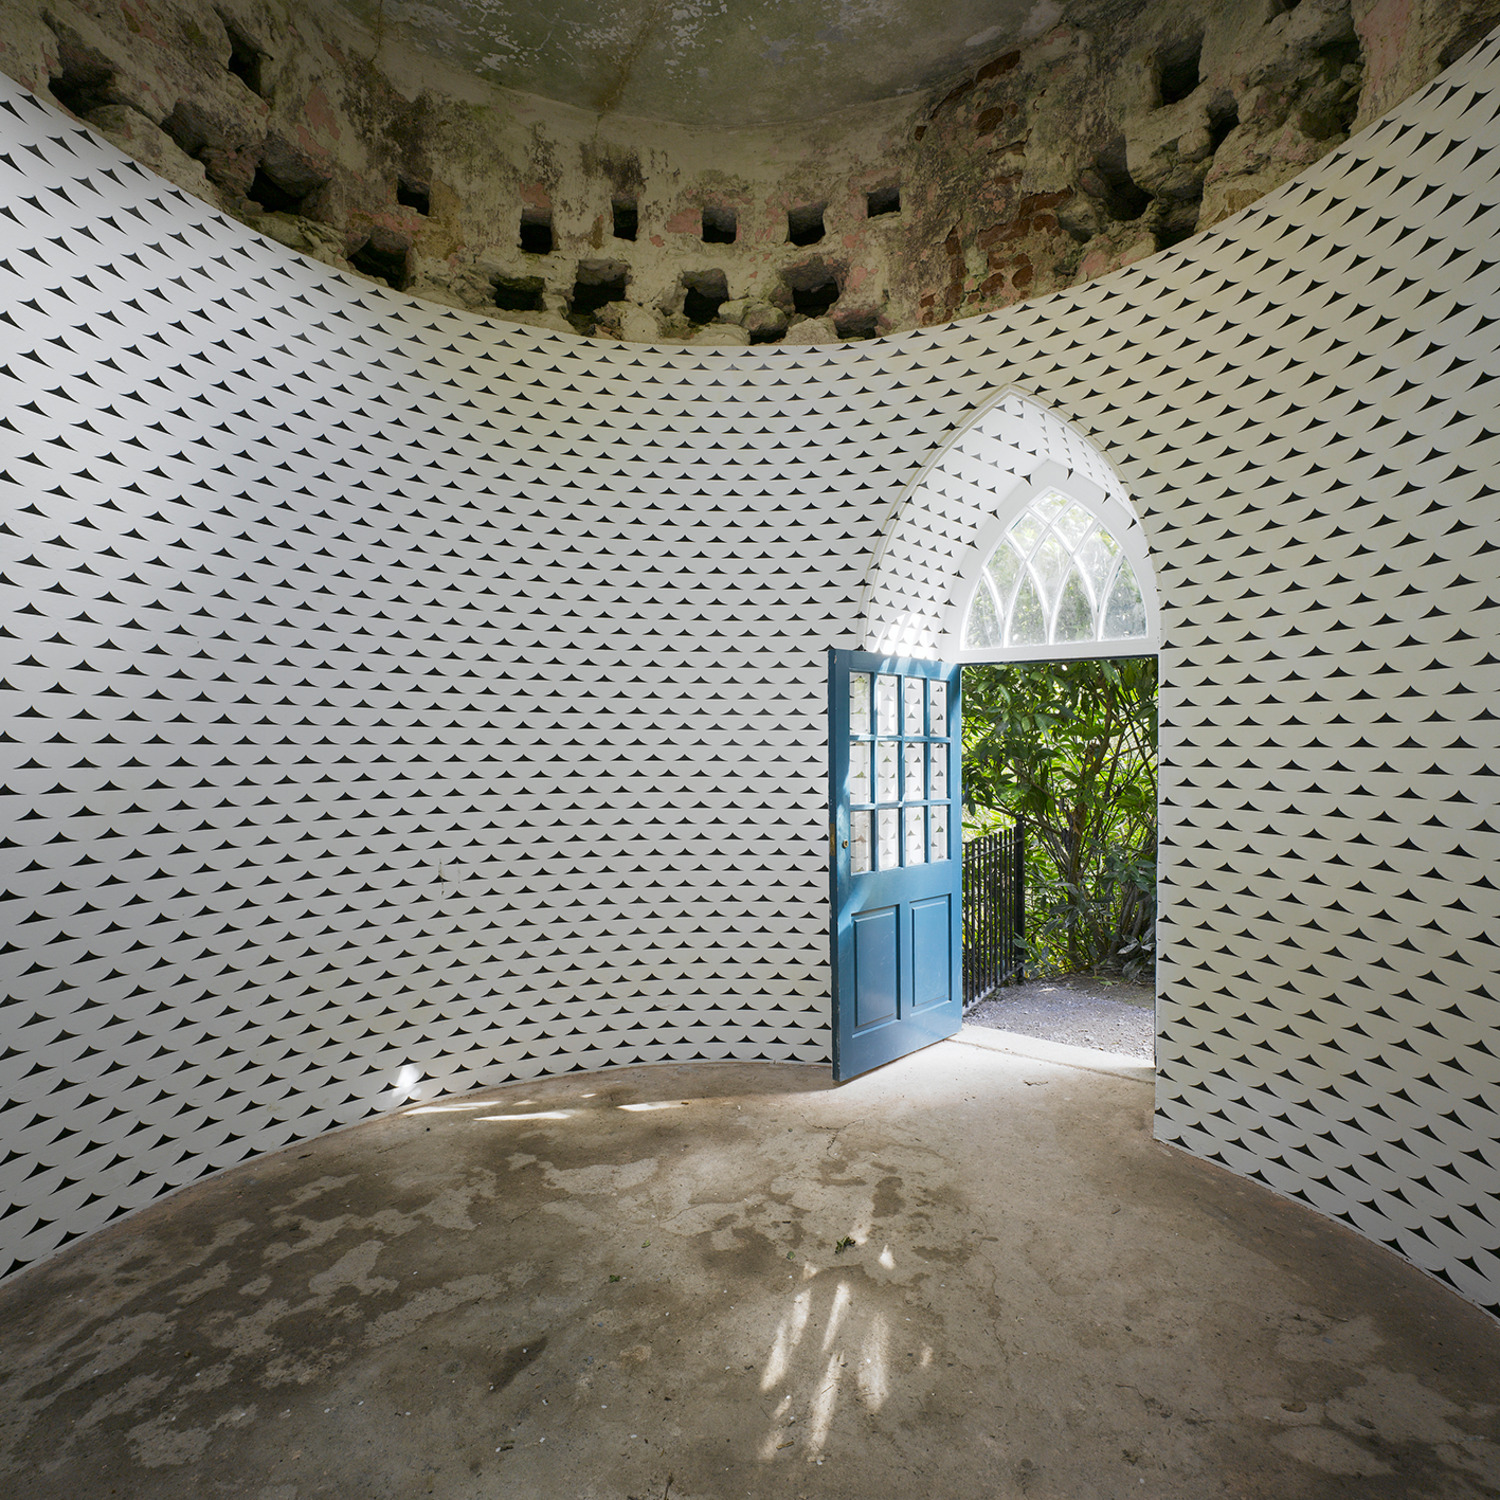 No Title, 2011, Acrylic on wall, Dimensions variable, Installation view, Lismore Castle Arts, Lismore